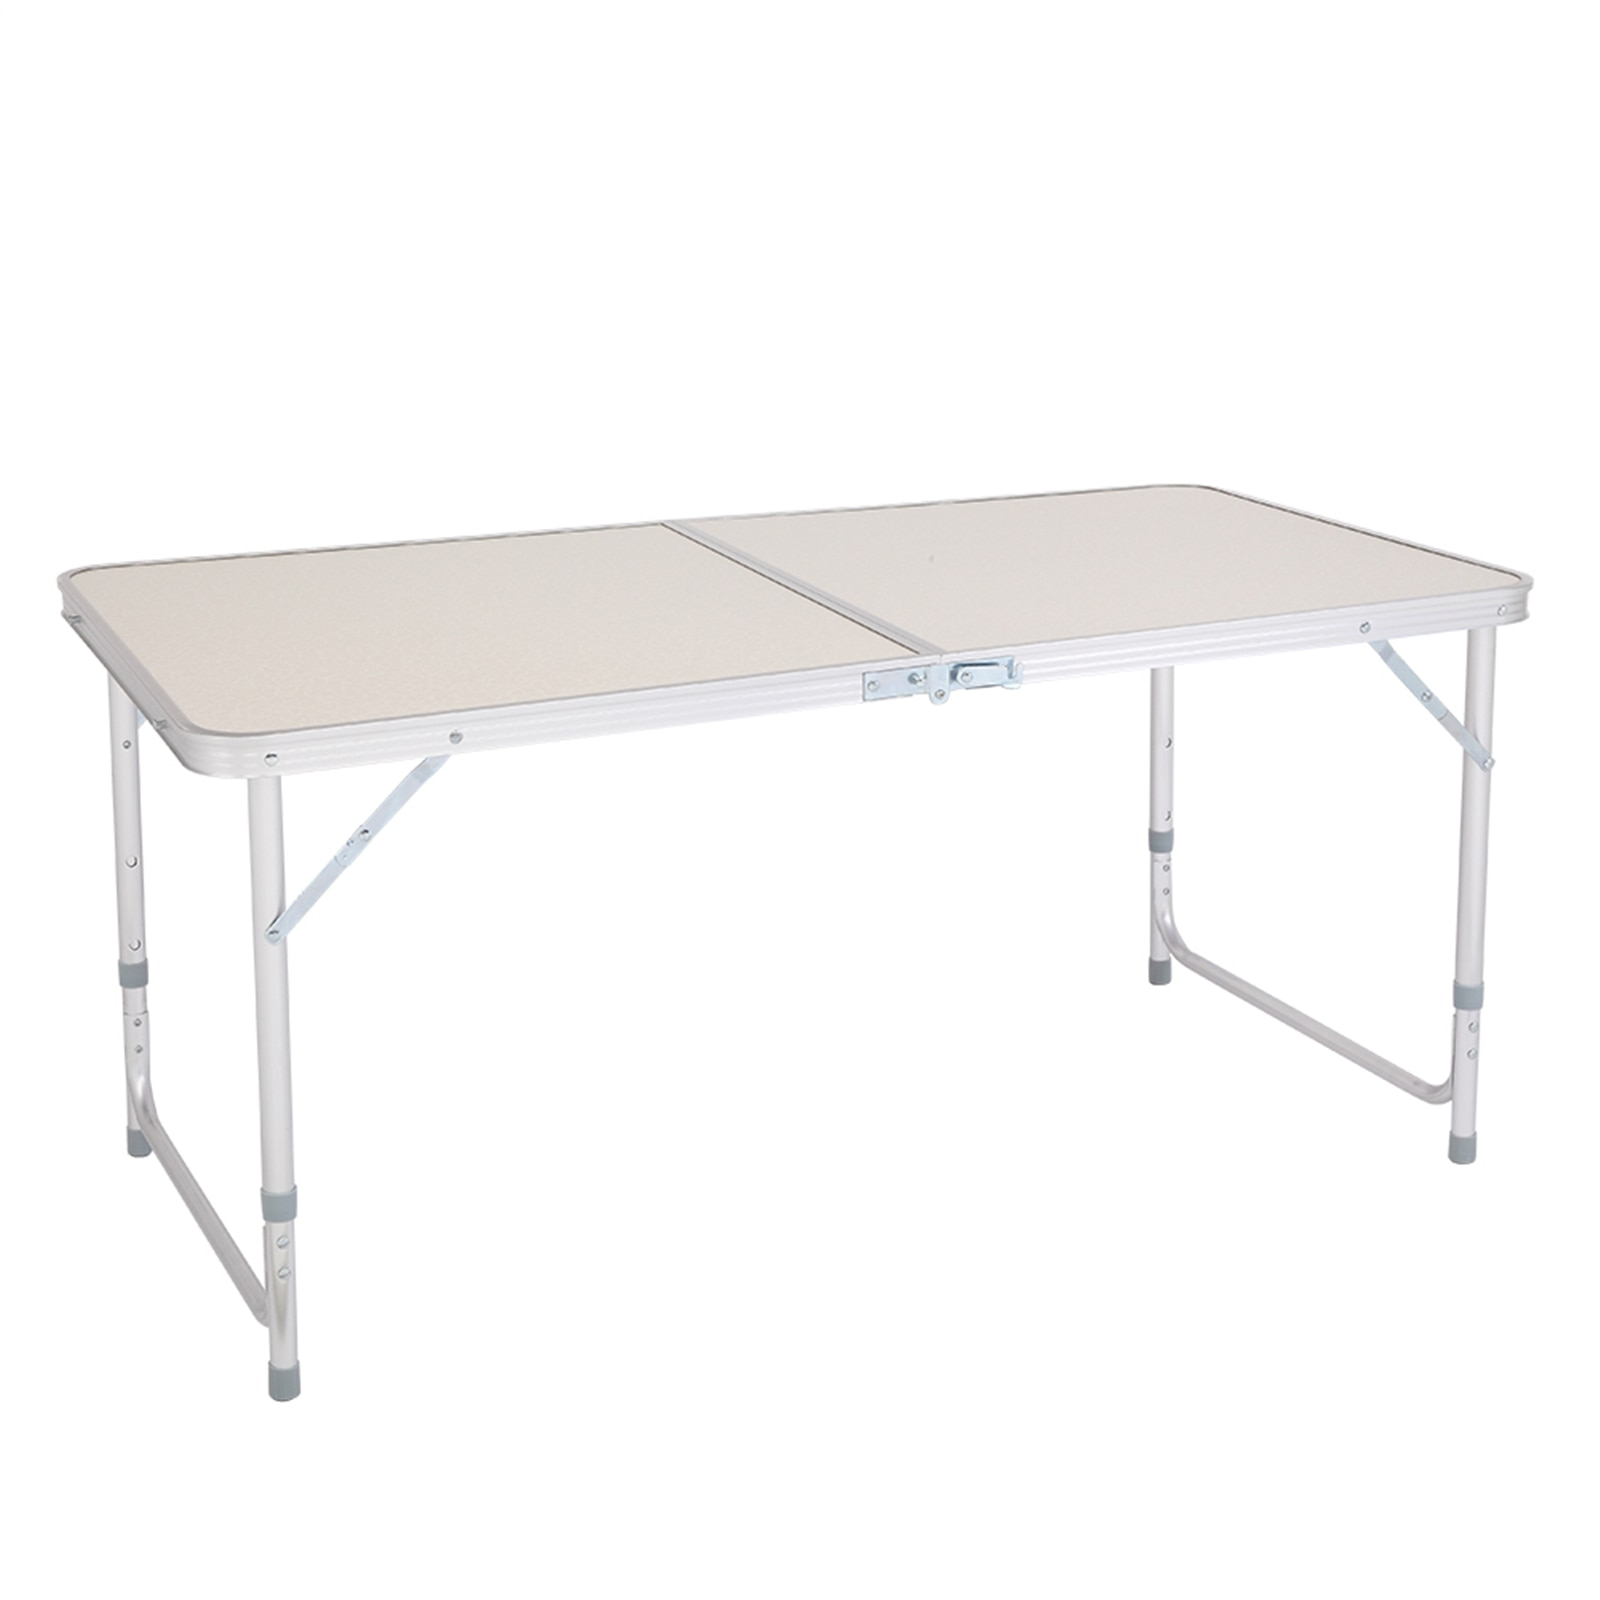 Foldable Table Camping Outdoor Furniture Aluminum Alloy Picnic Party BBQ Portable Table Durable Folding Desk Height Adjustable